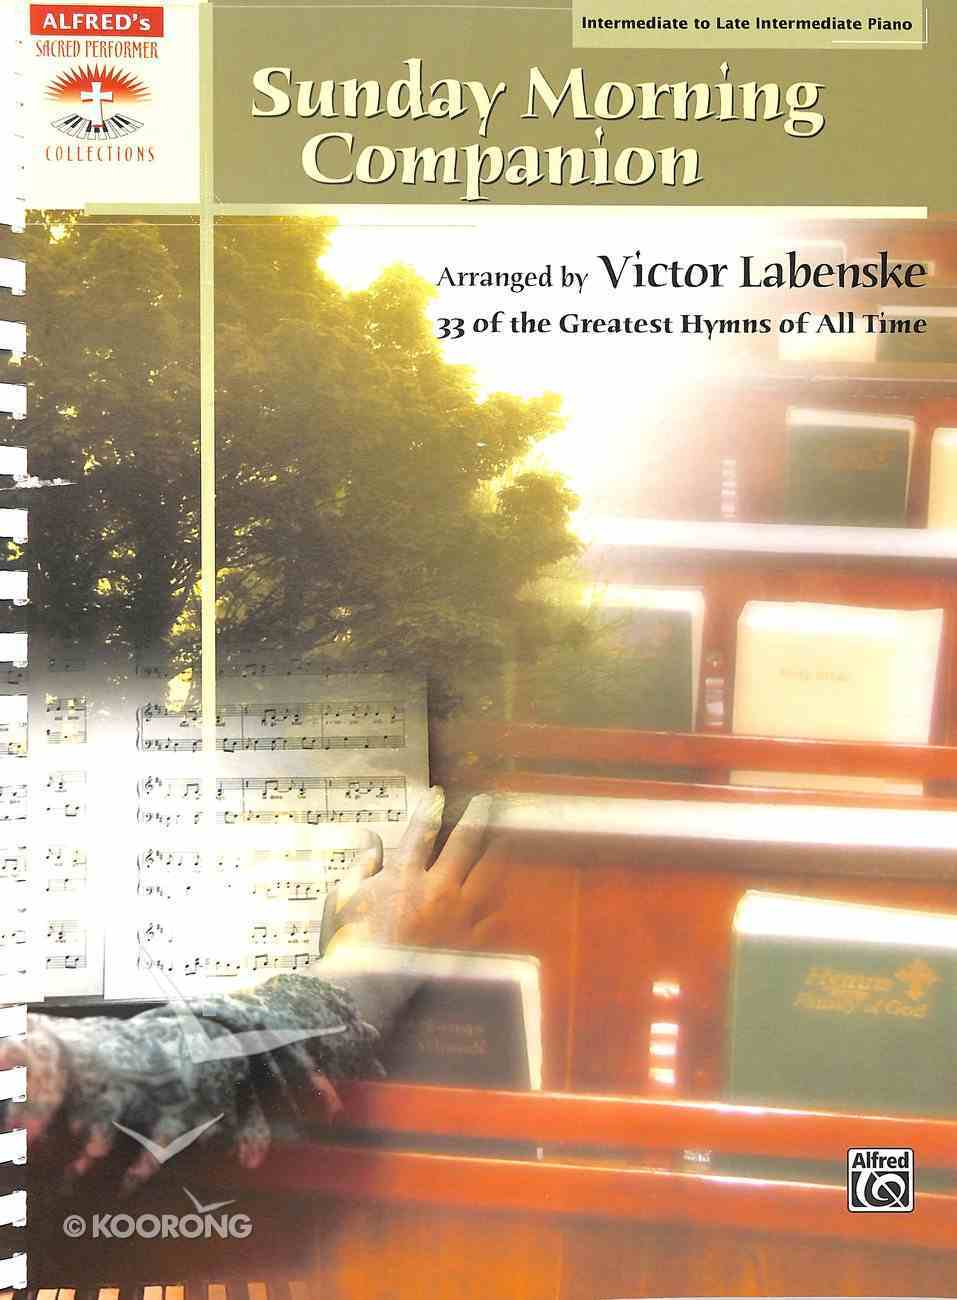 Sunday Morning Companion: 33 of the Greatest Hymns of All Time  Intermediate to Late Intermediate Piano (Music Book) Paperback